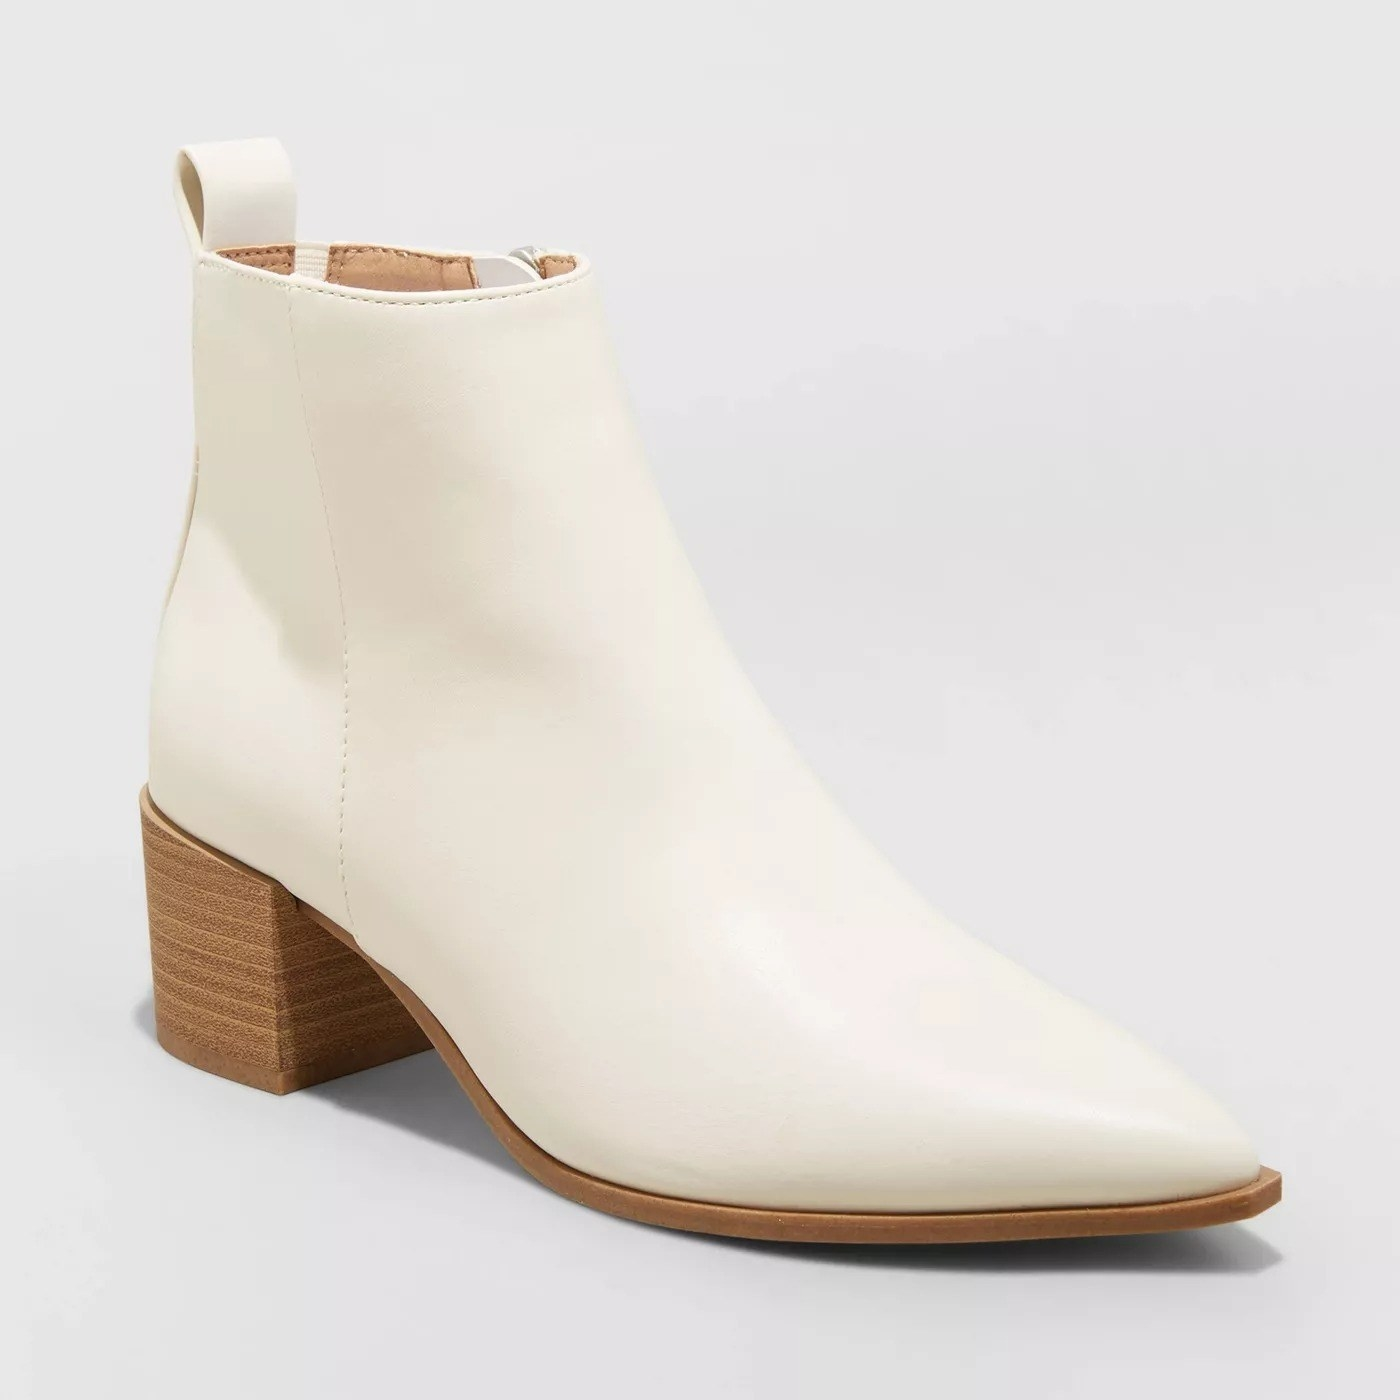 White ankle boots with pointy toe and oak colored sole, medium sized heel